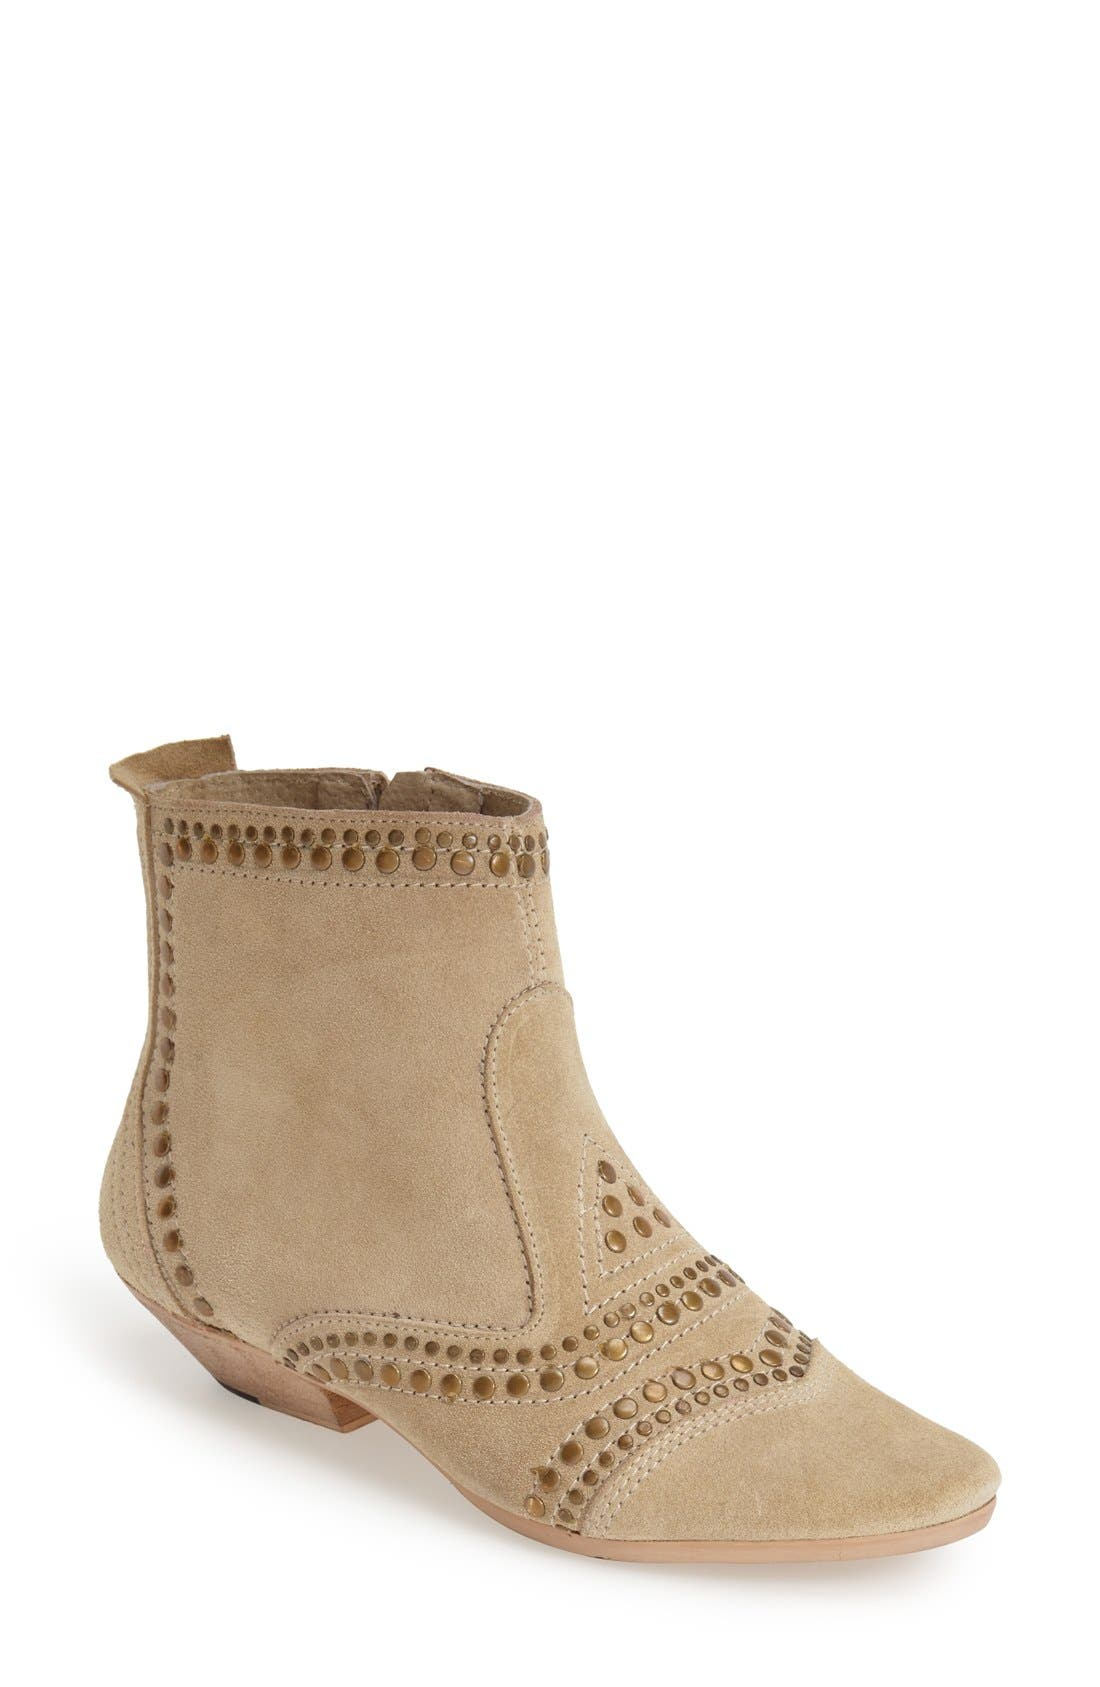 Main Image - Matisse 'Sultan' Embellished Ankle Boot (Women)